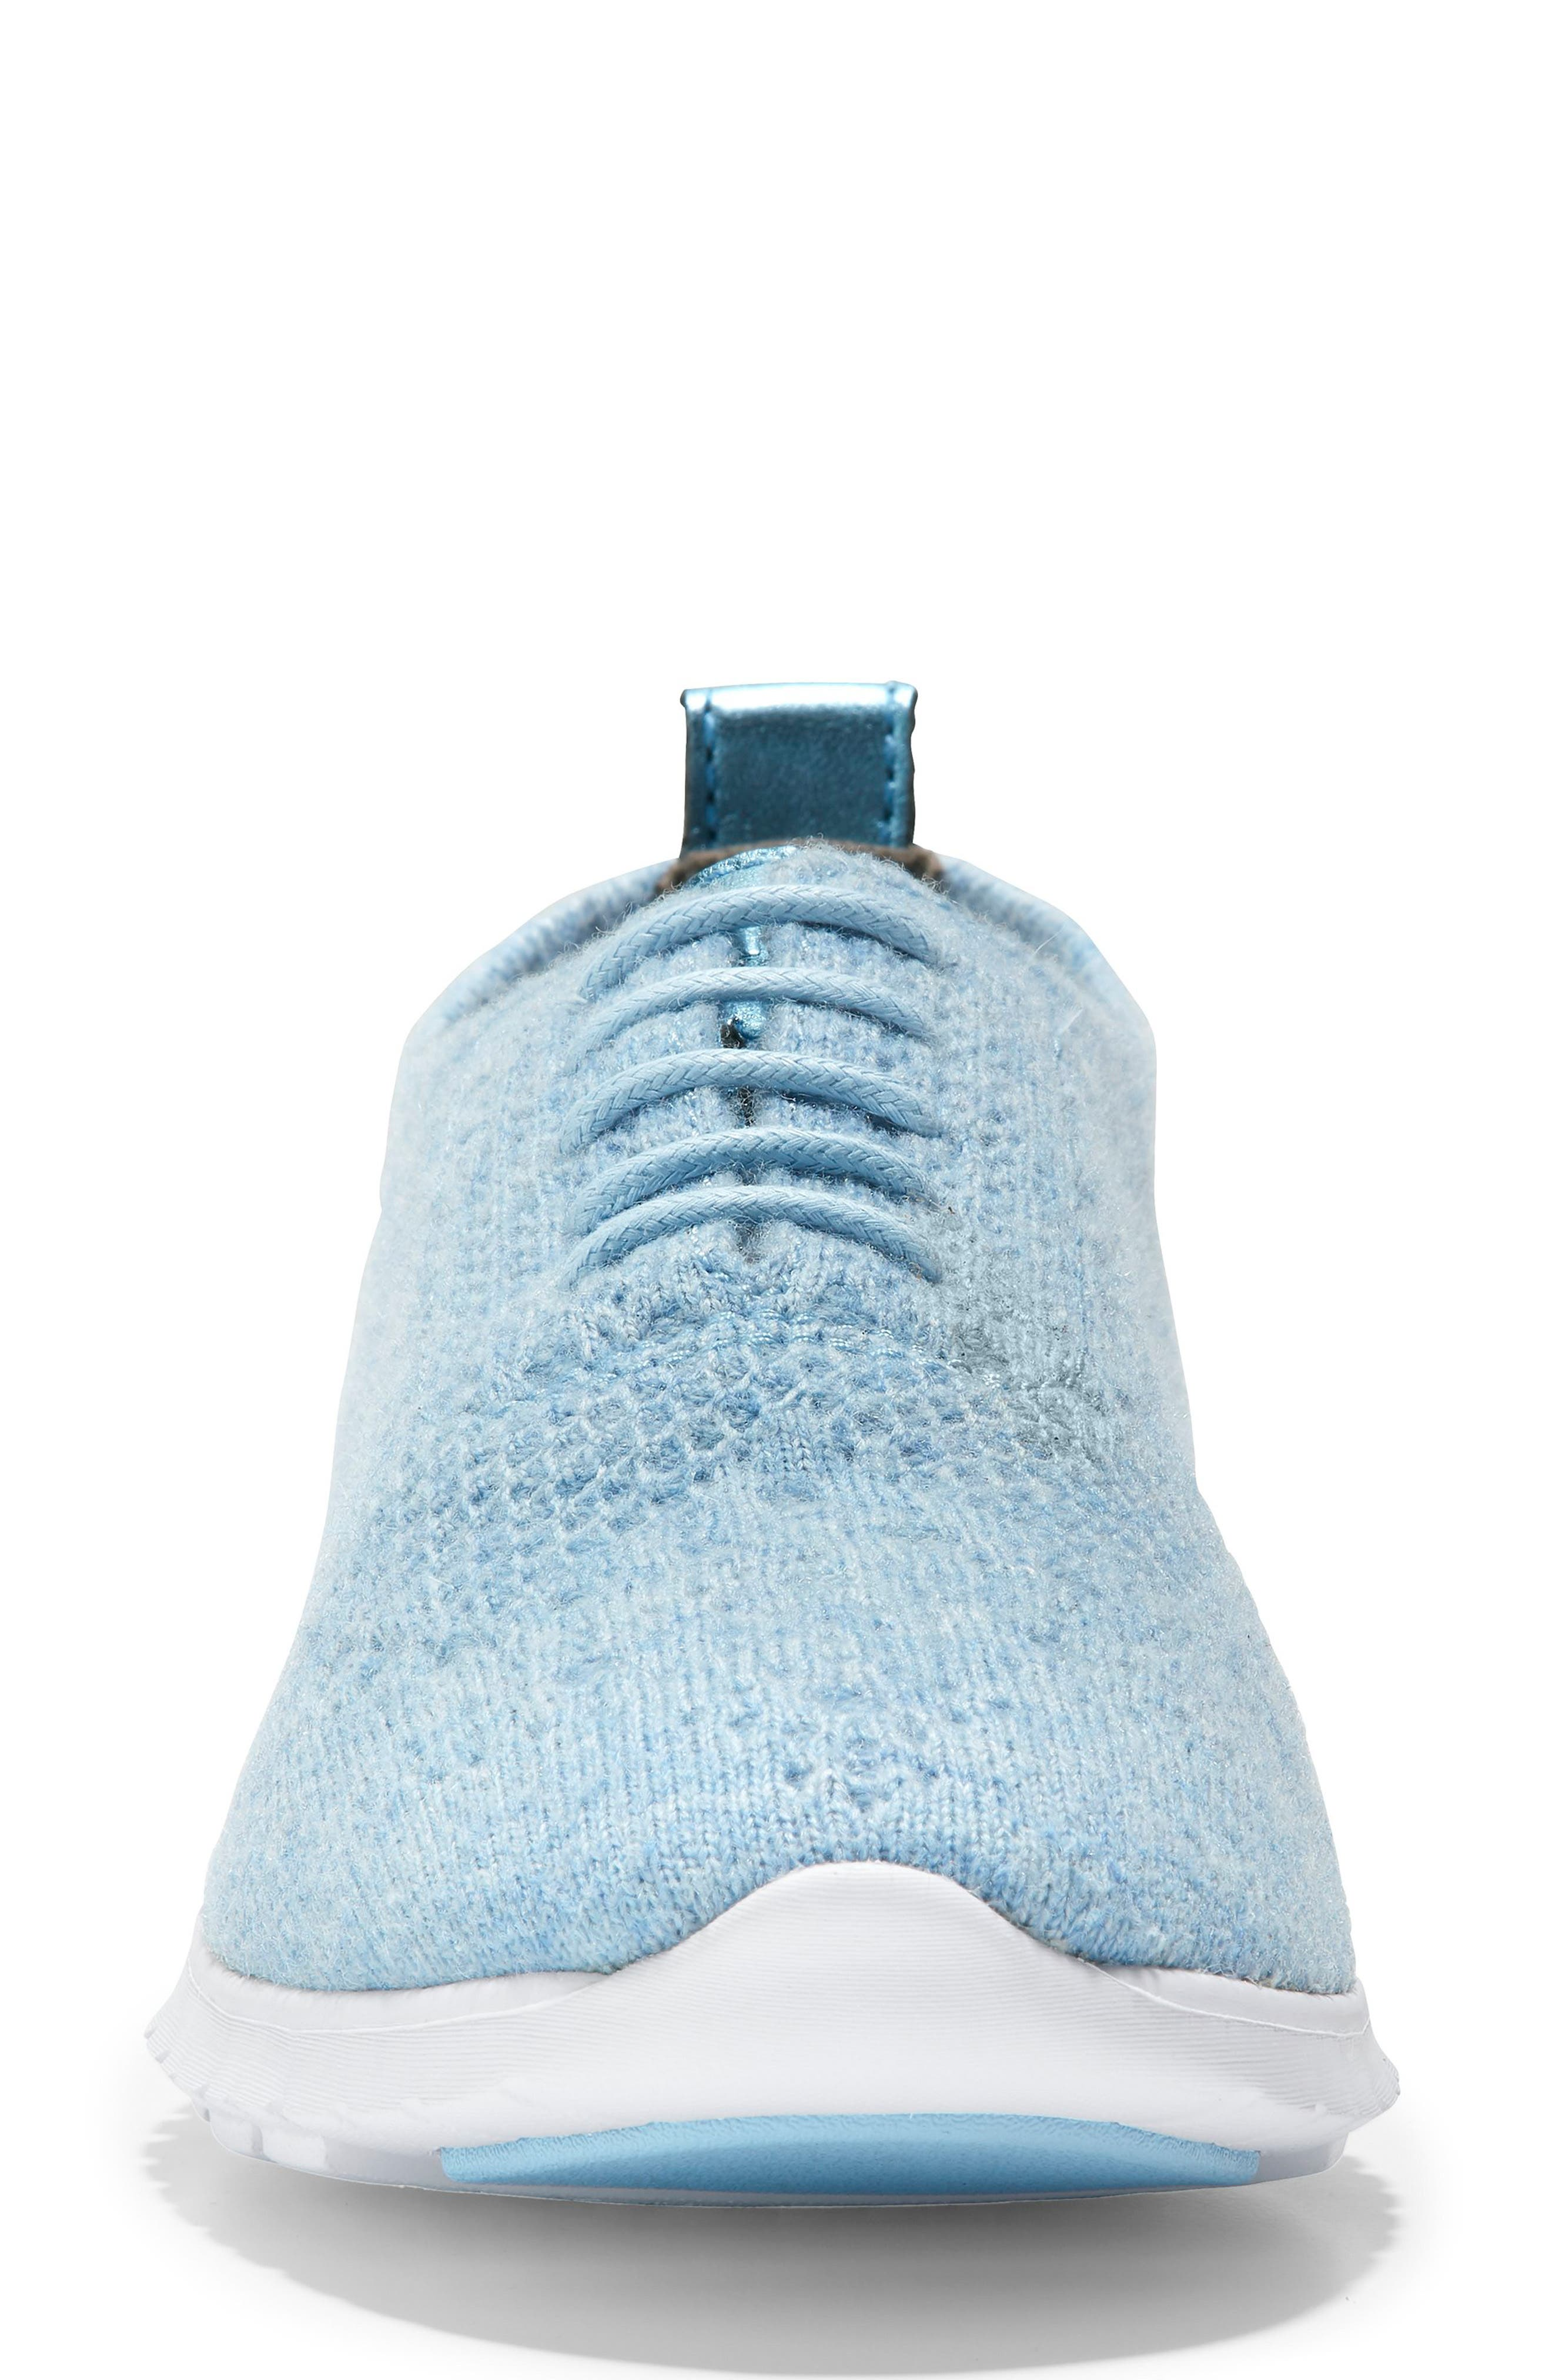 COLE HAAN,                             ZeroGrand Stitchlite Wool Flat,                             Alternate thumbnail 4, color,                             CHAMBRAY BLUE FABRIC